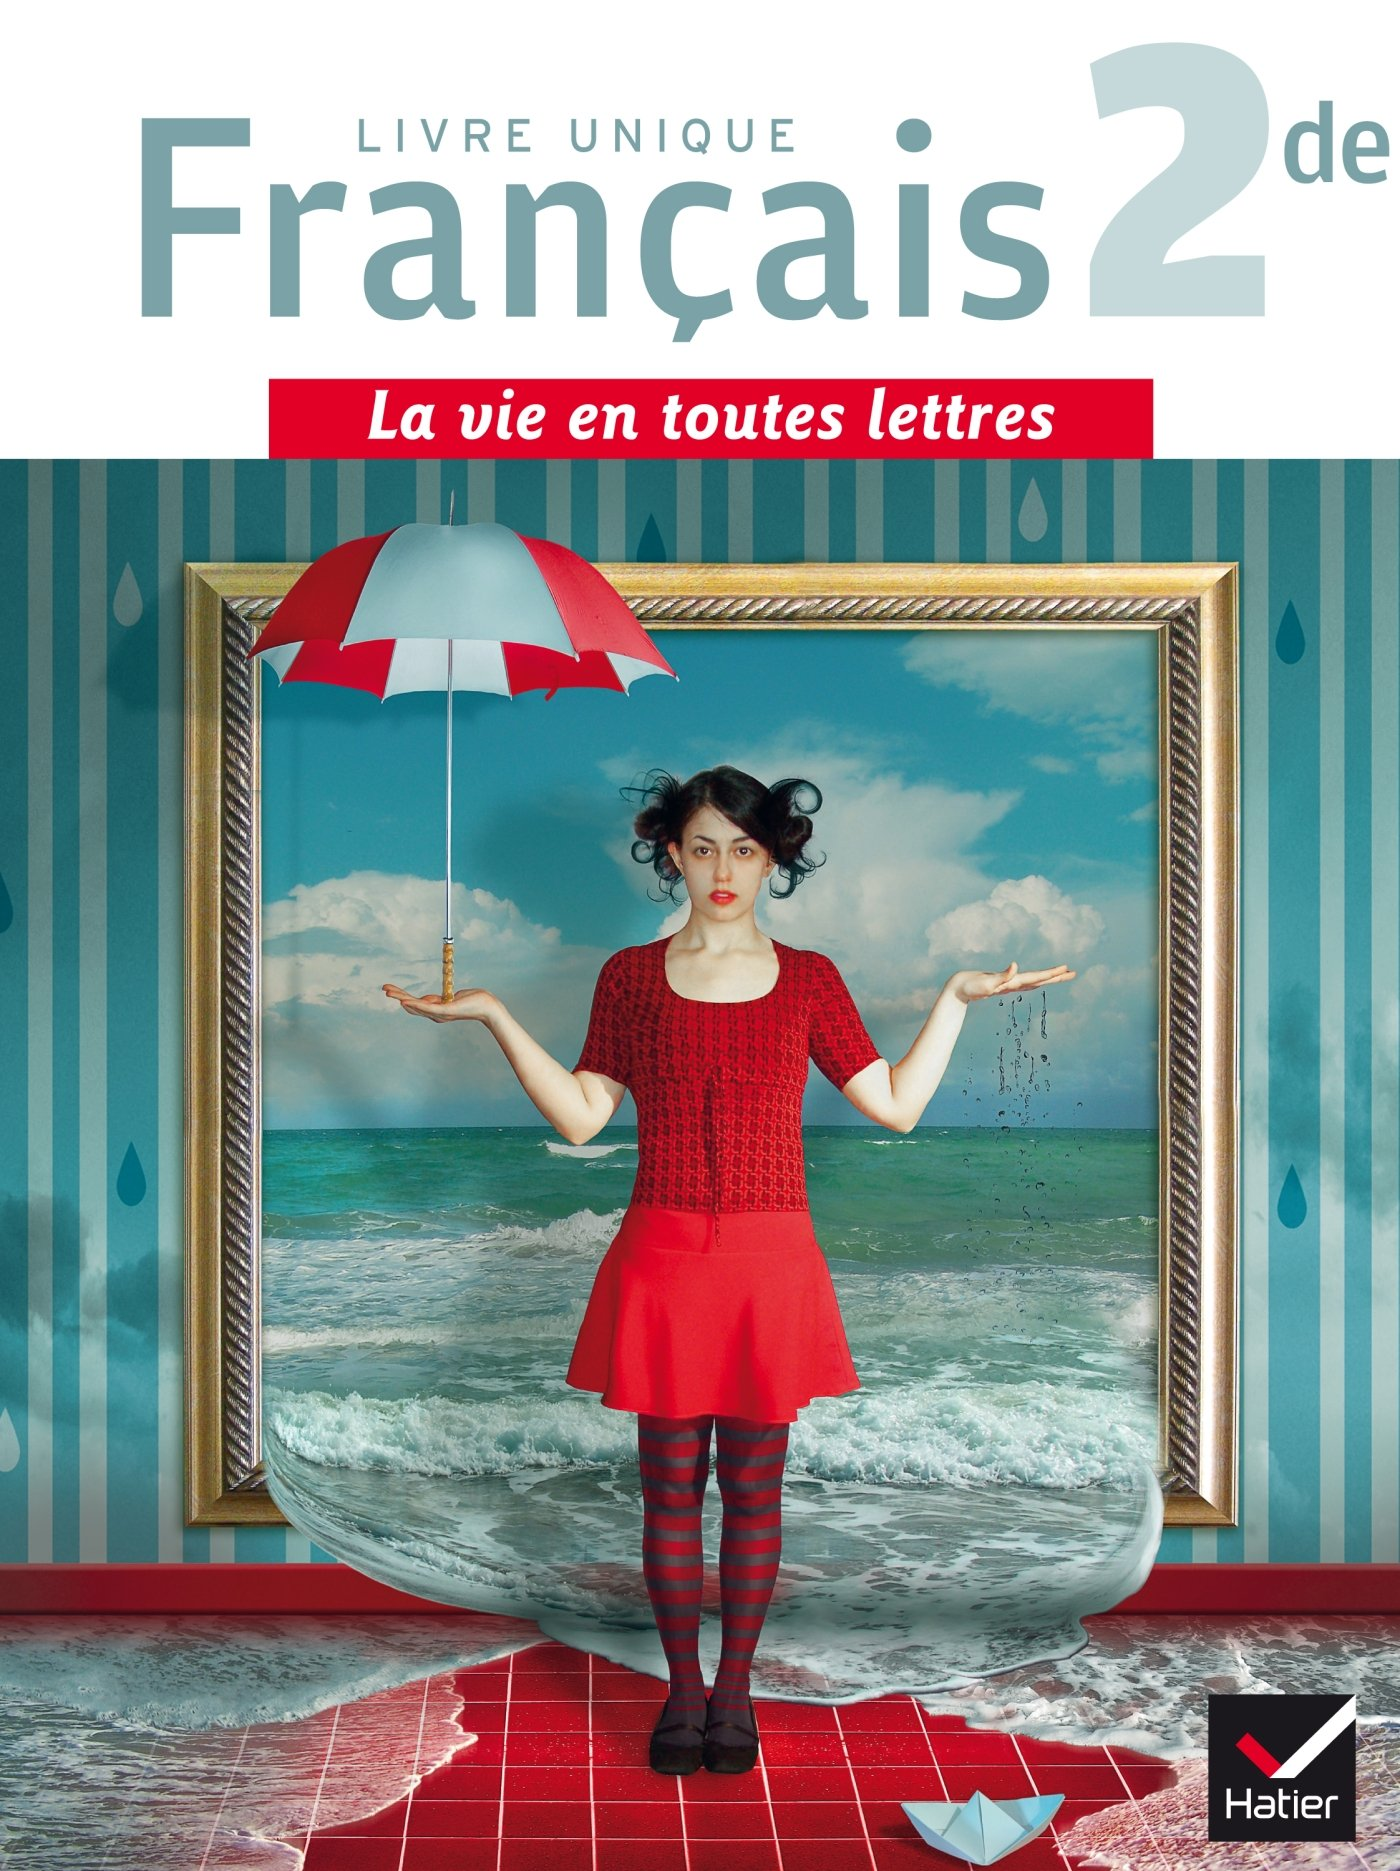 Francais 2de Livre Unique Amazon Co Uk Laetitia Boisseau